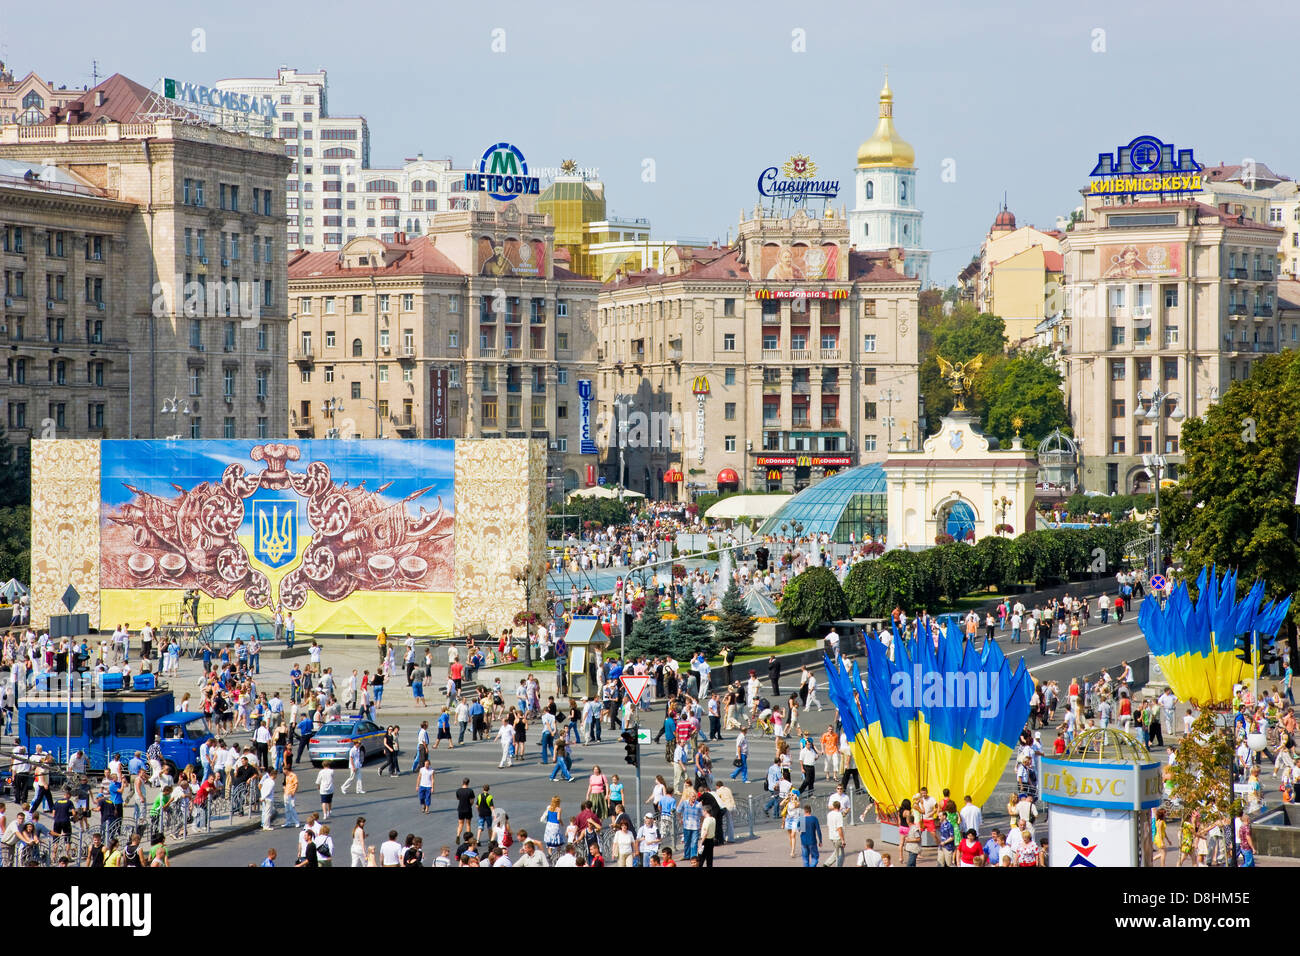 Independence day, Ukrainian national flags flying in Maidan Nezalezhnosti, (Independence Square) Kiev, Ukraine. - Stock Image